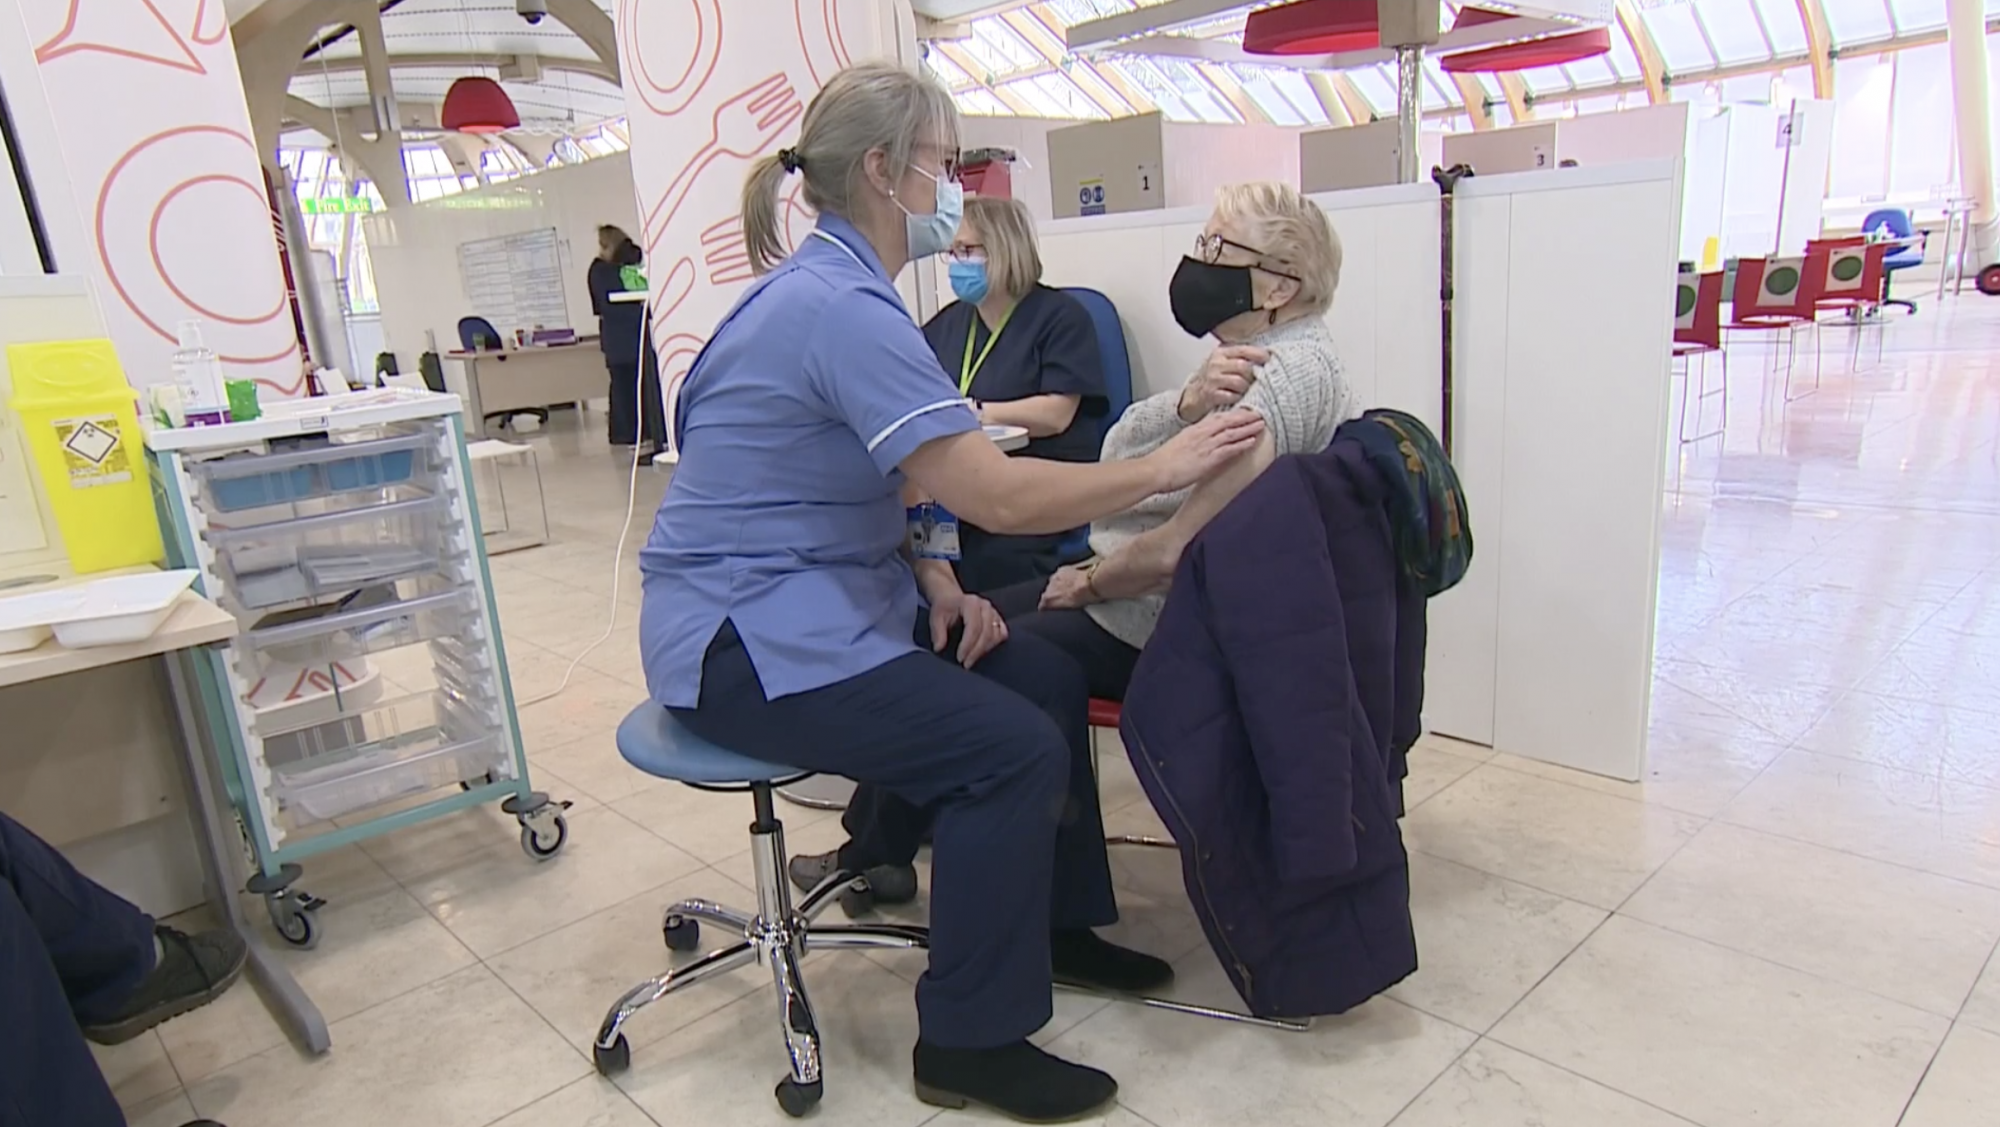 Over-70s and clinically extremely vulnerable offered Covid jabs in England - channel 4